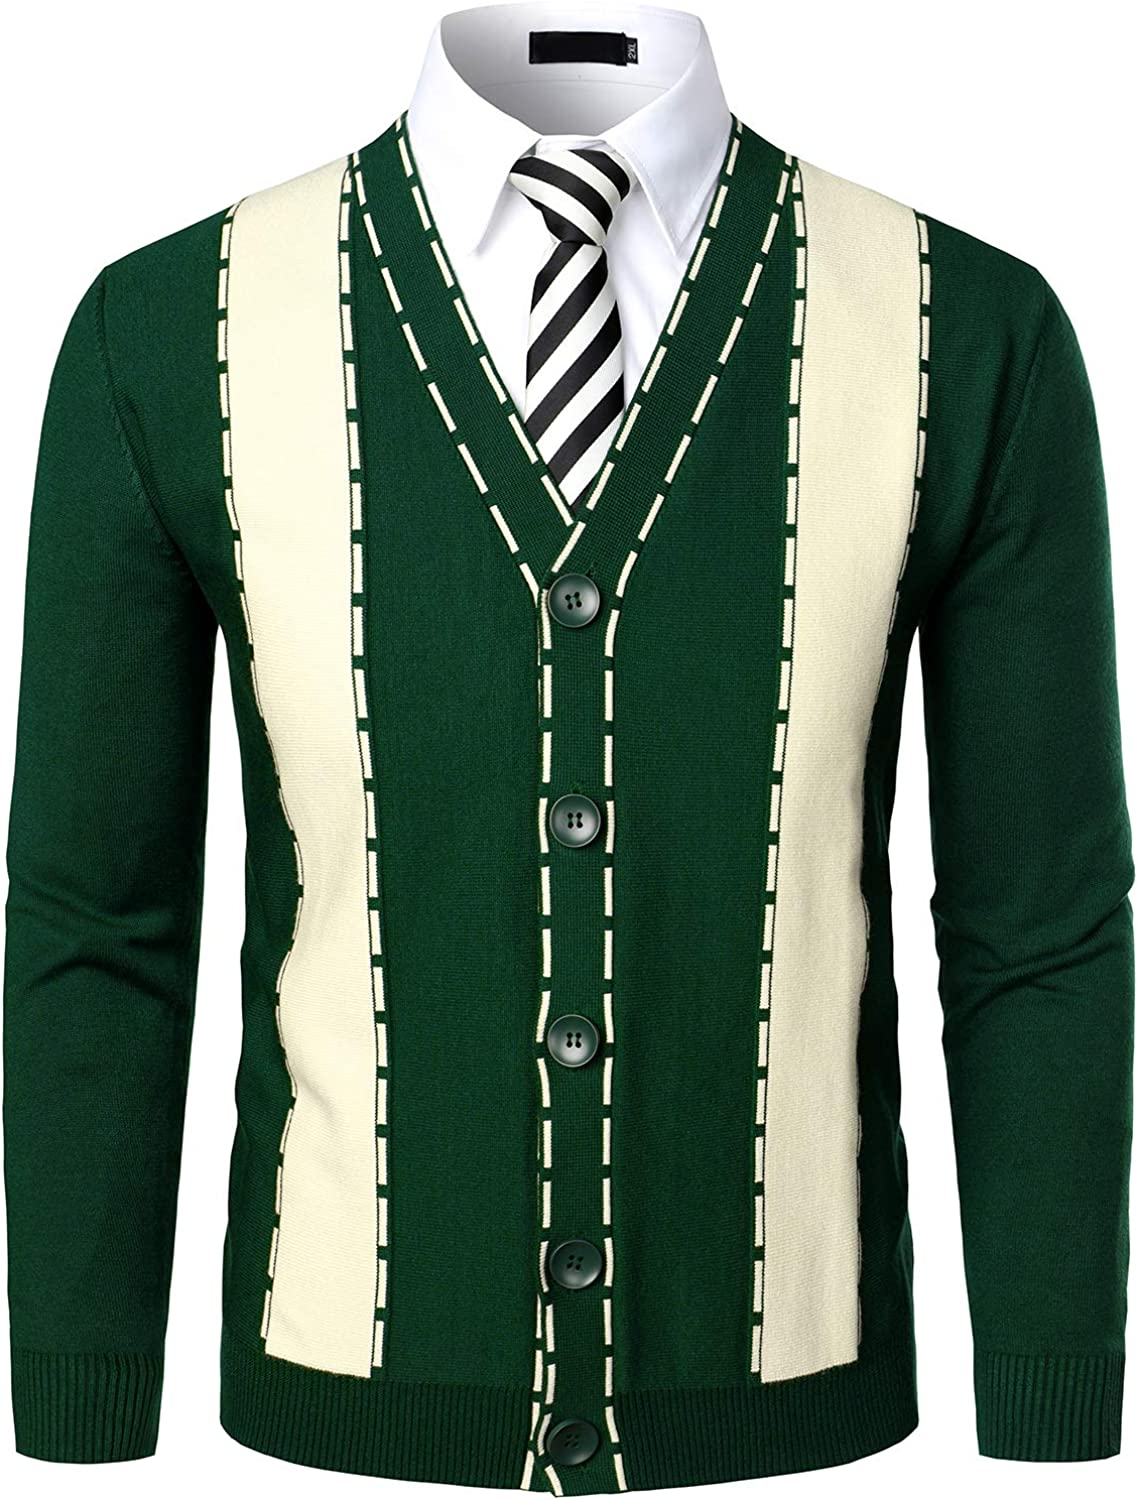 VATPAVE Mens V-Neck Slim Fit Cardigan Sweater Pattened Button Down Casual Knitted Sweater